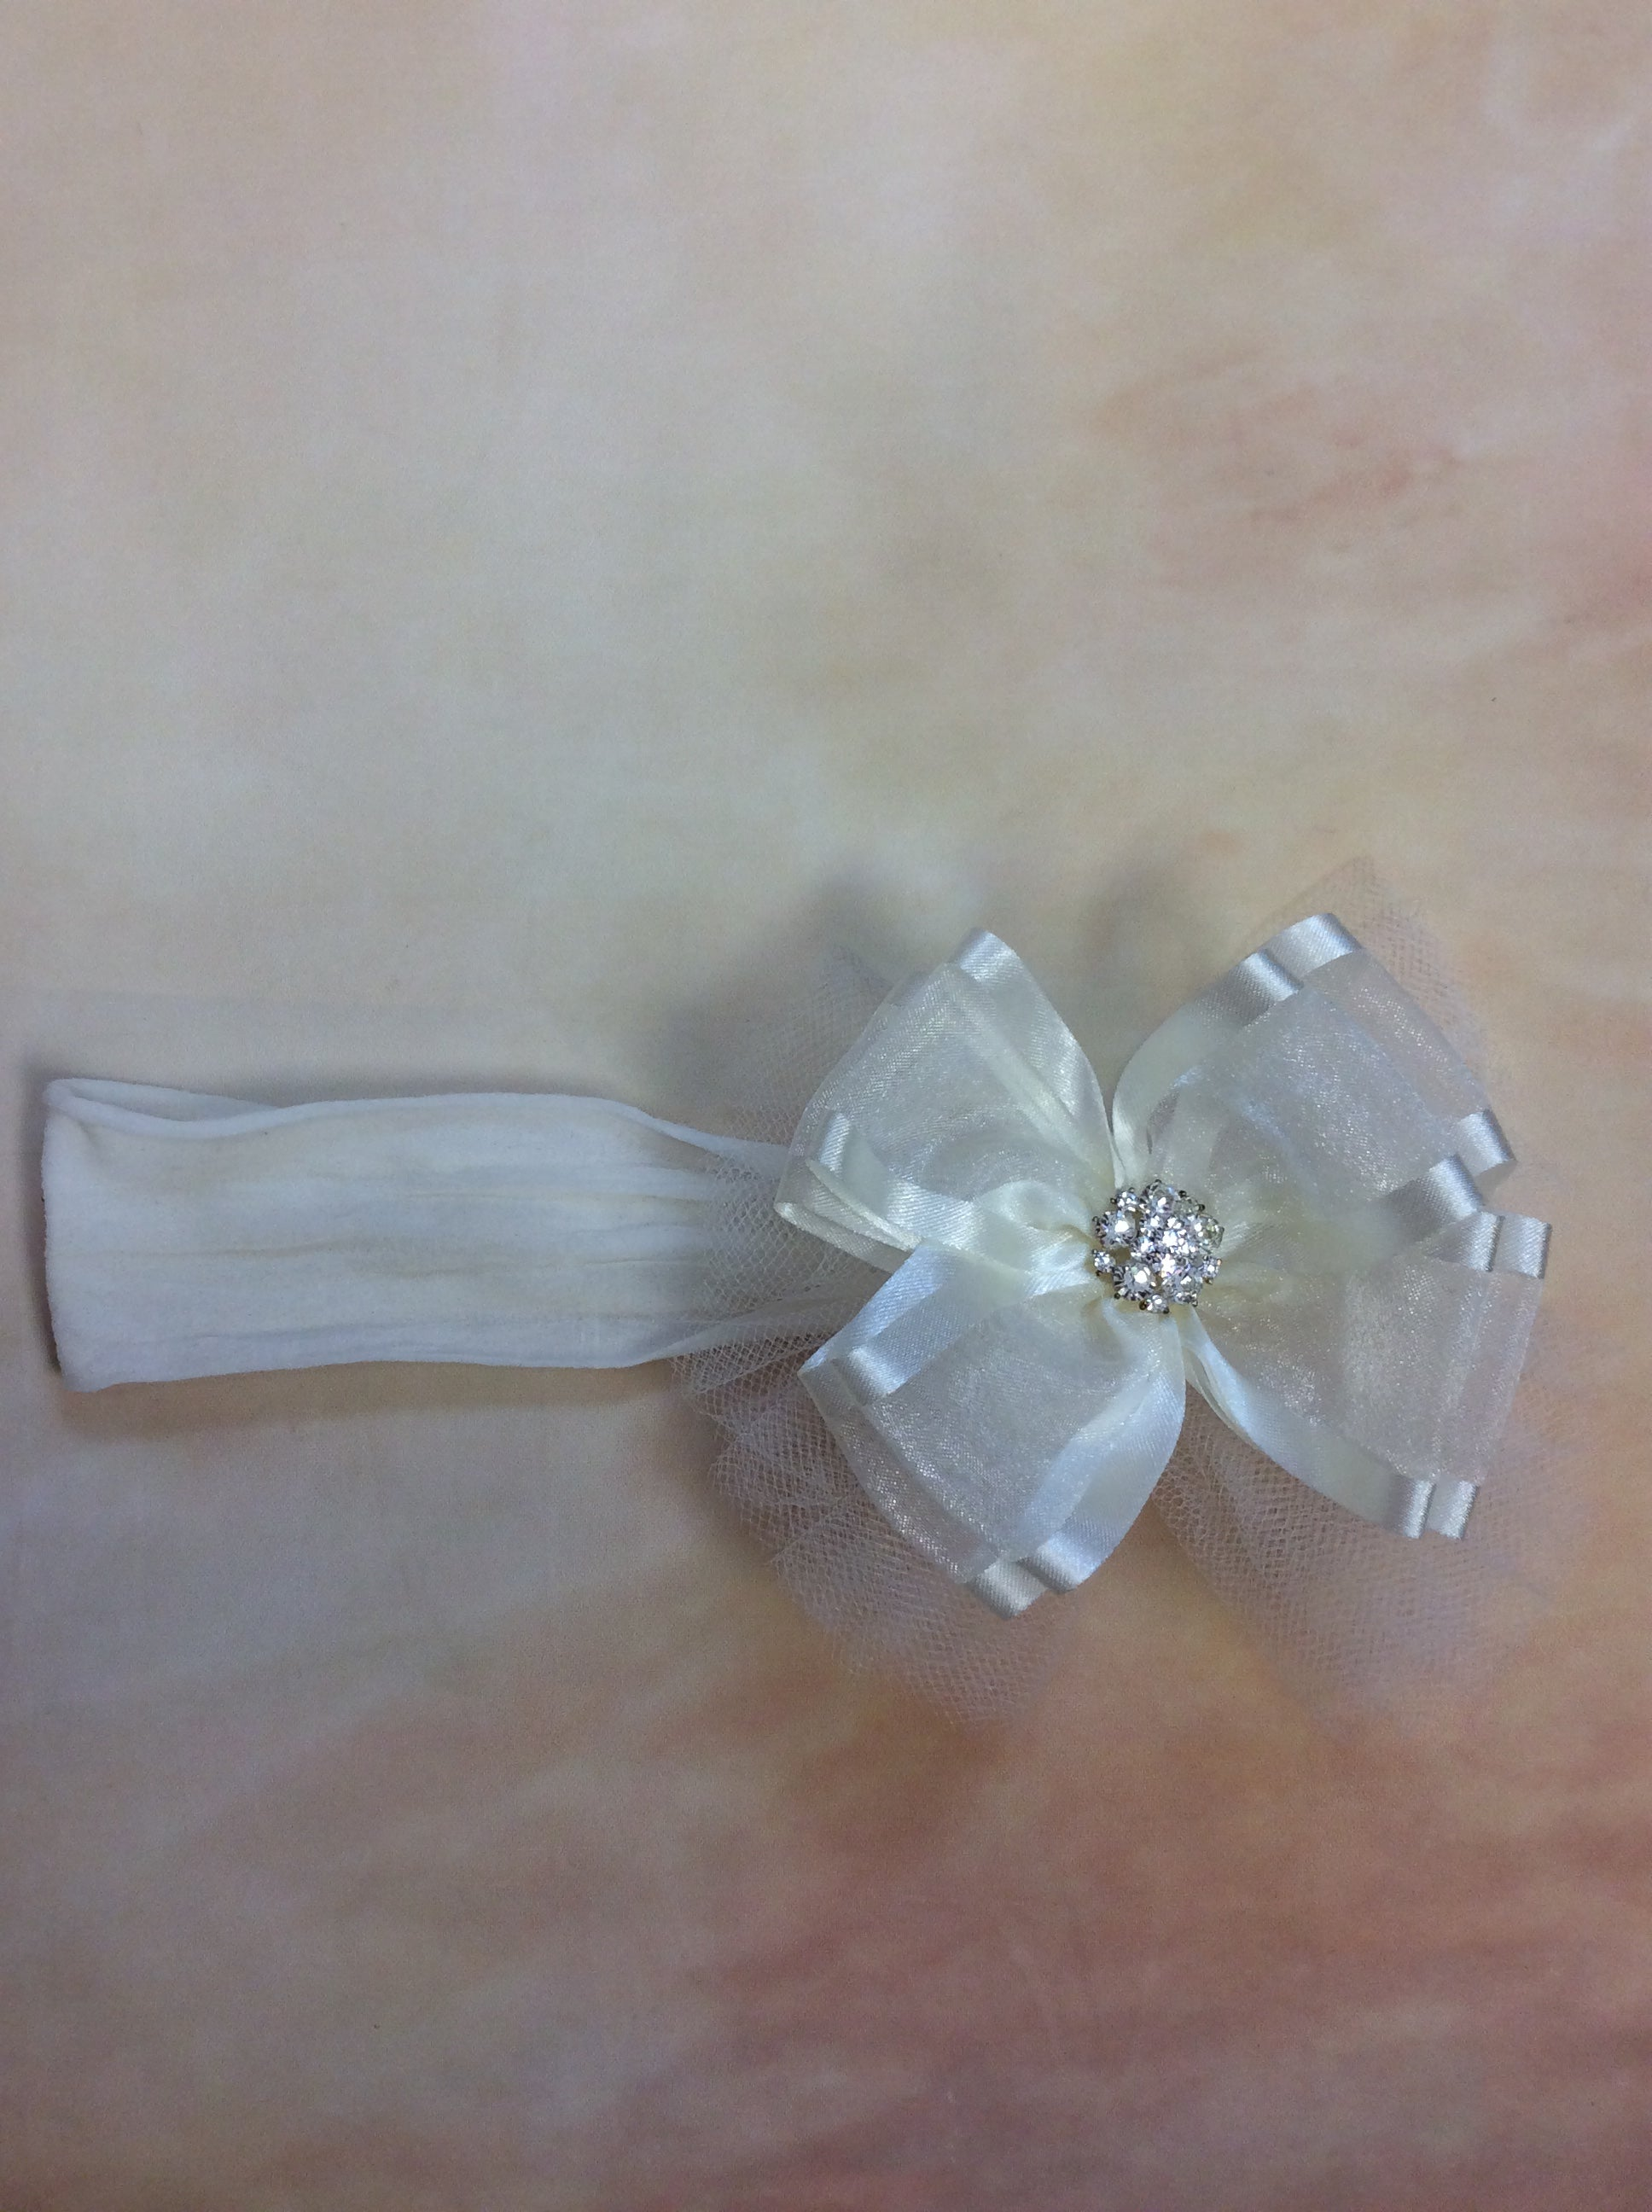 BWISO1 Ivory satin & organza headband with crystal center stone